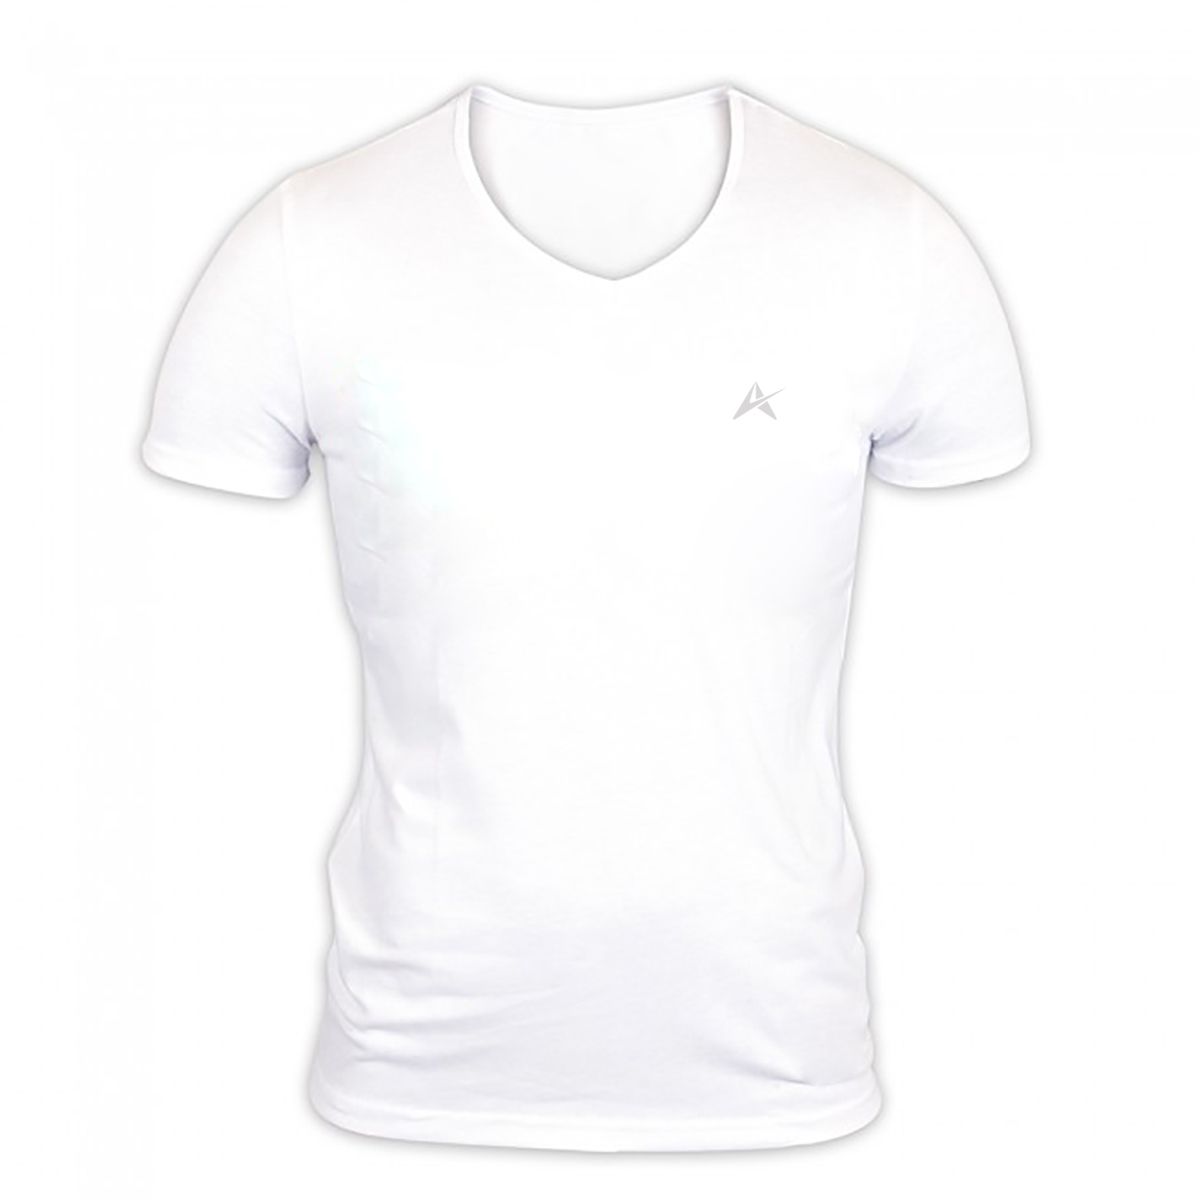 Plain Men's Cotton Crew Neck T-Shirt AI-001